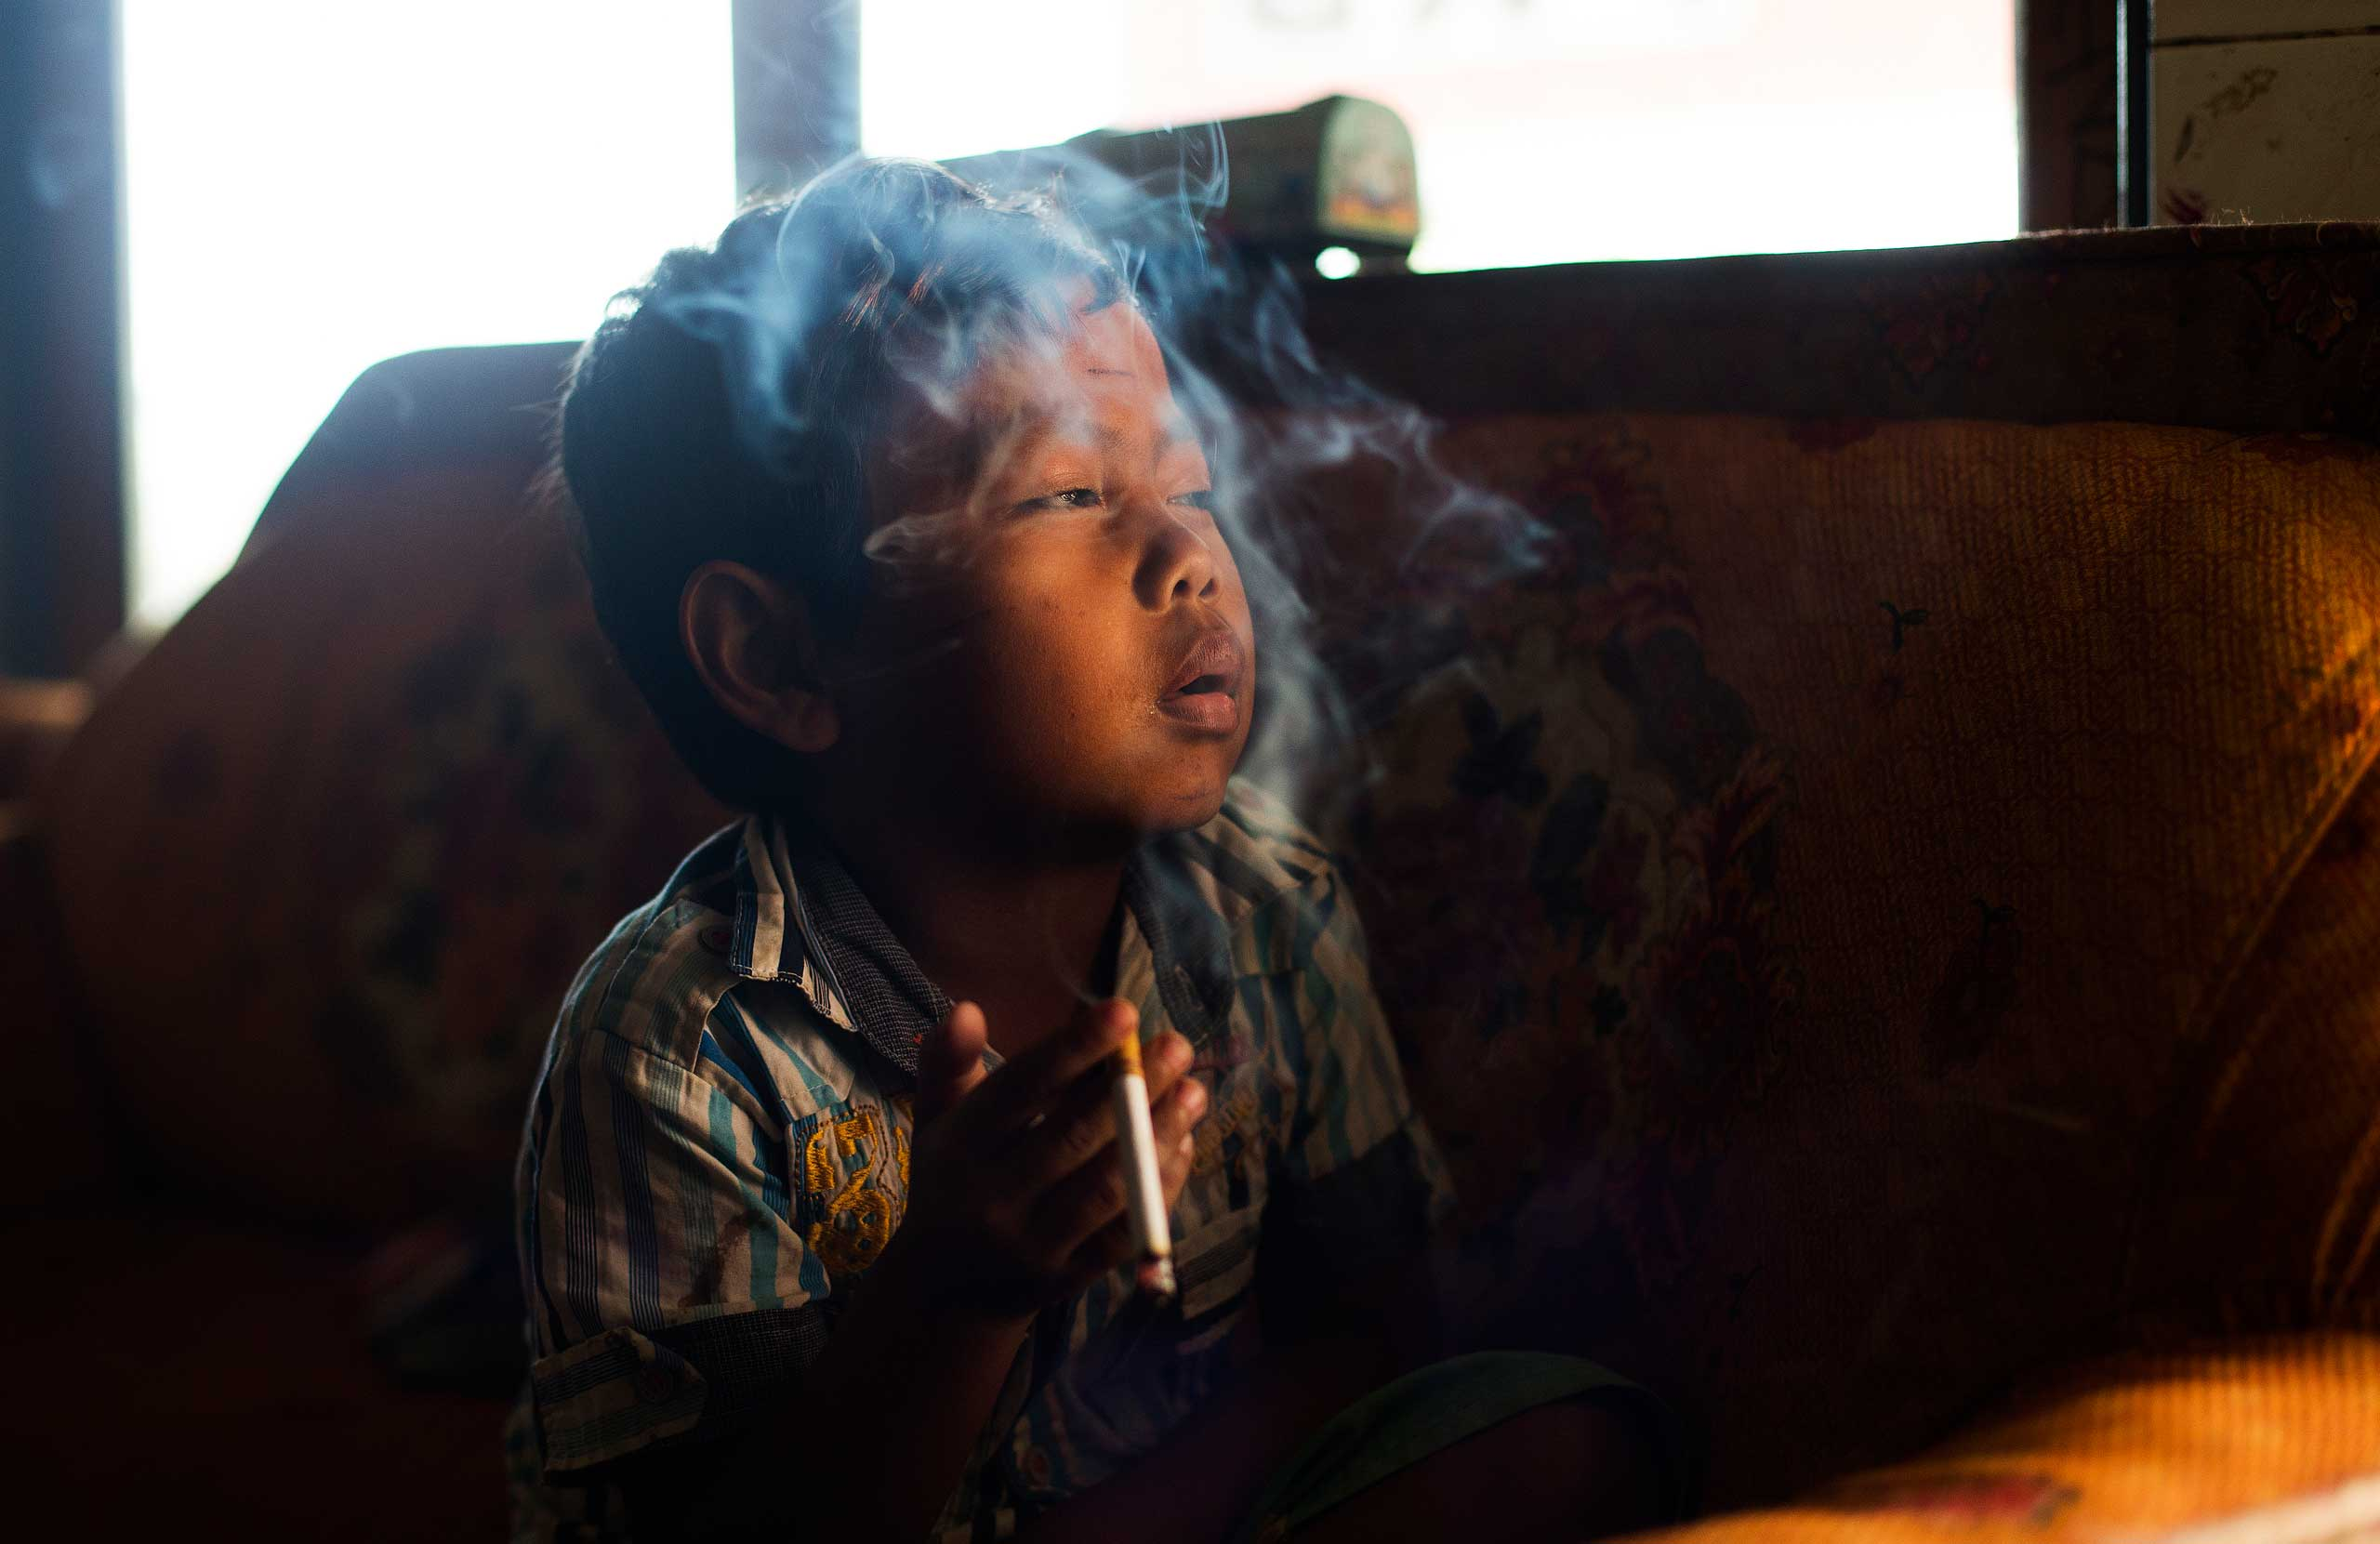 Dihan Muhamad smokes in his home in a village near the town of Garut, Indonesia on February 10, 2014.